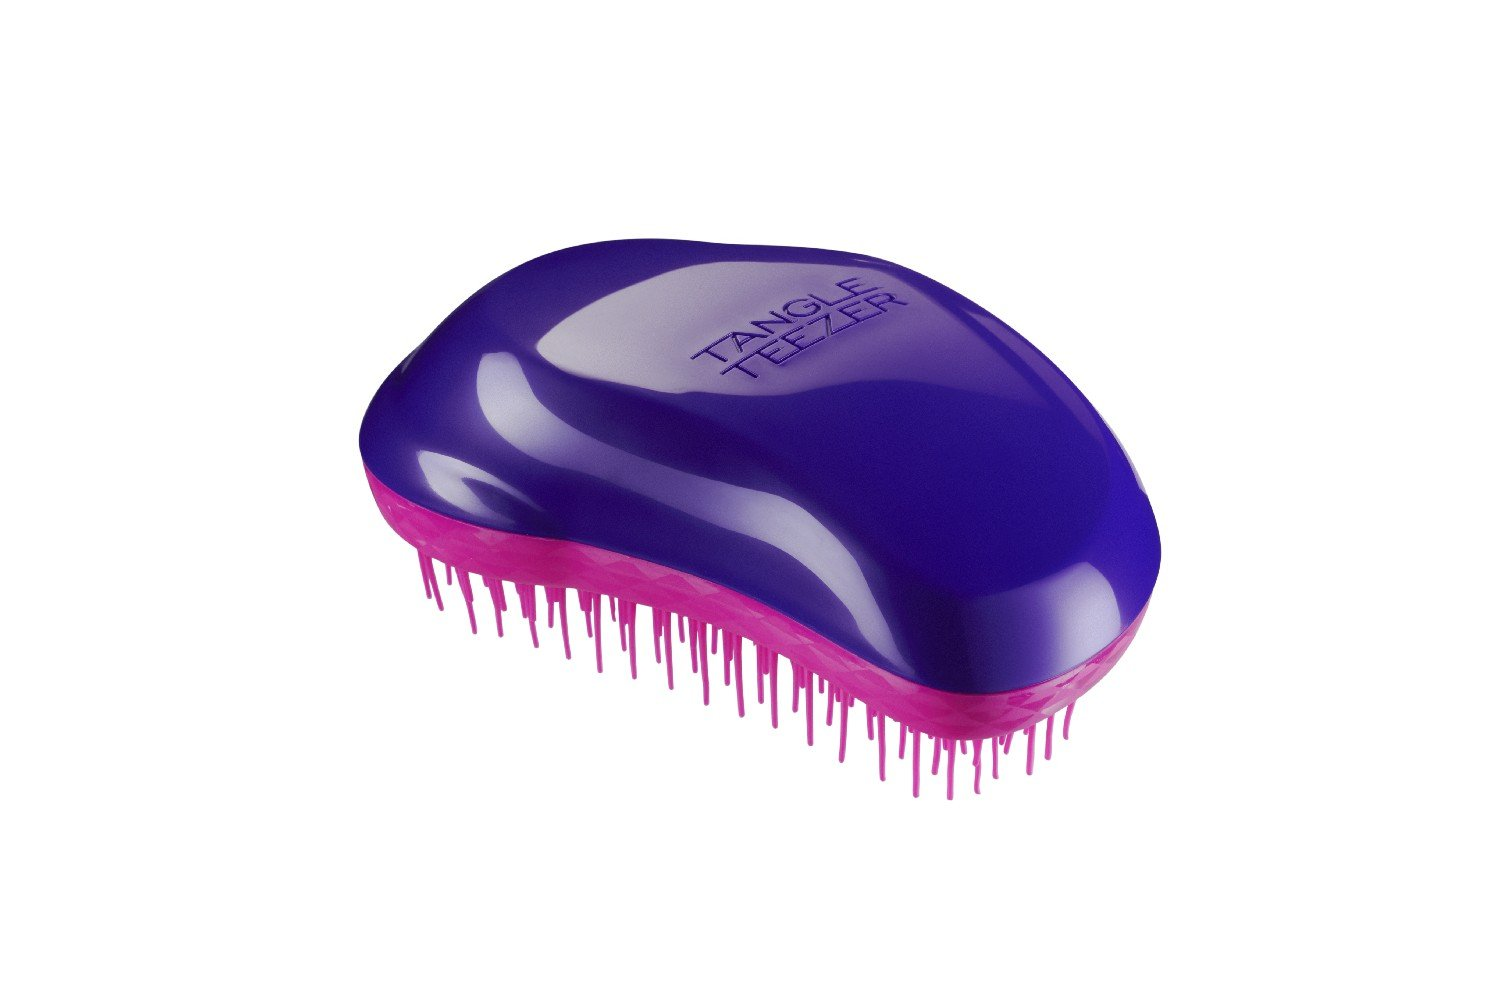 Tangle Teezer The Original, Wet or Dry Detangling Hairbrush for All Hair Types - Plum Delicious